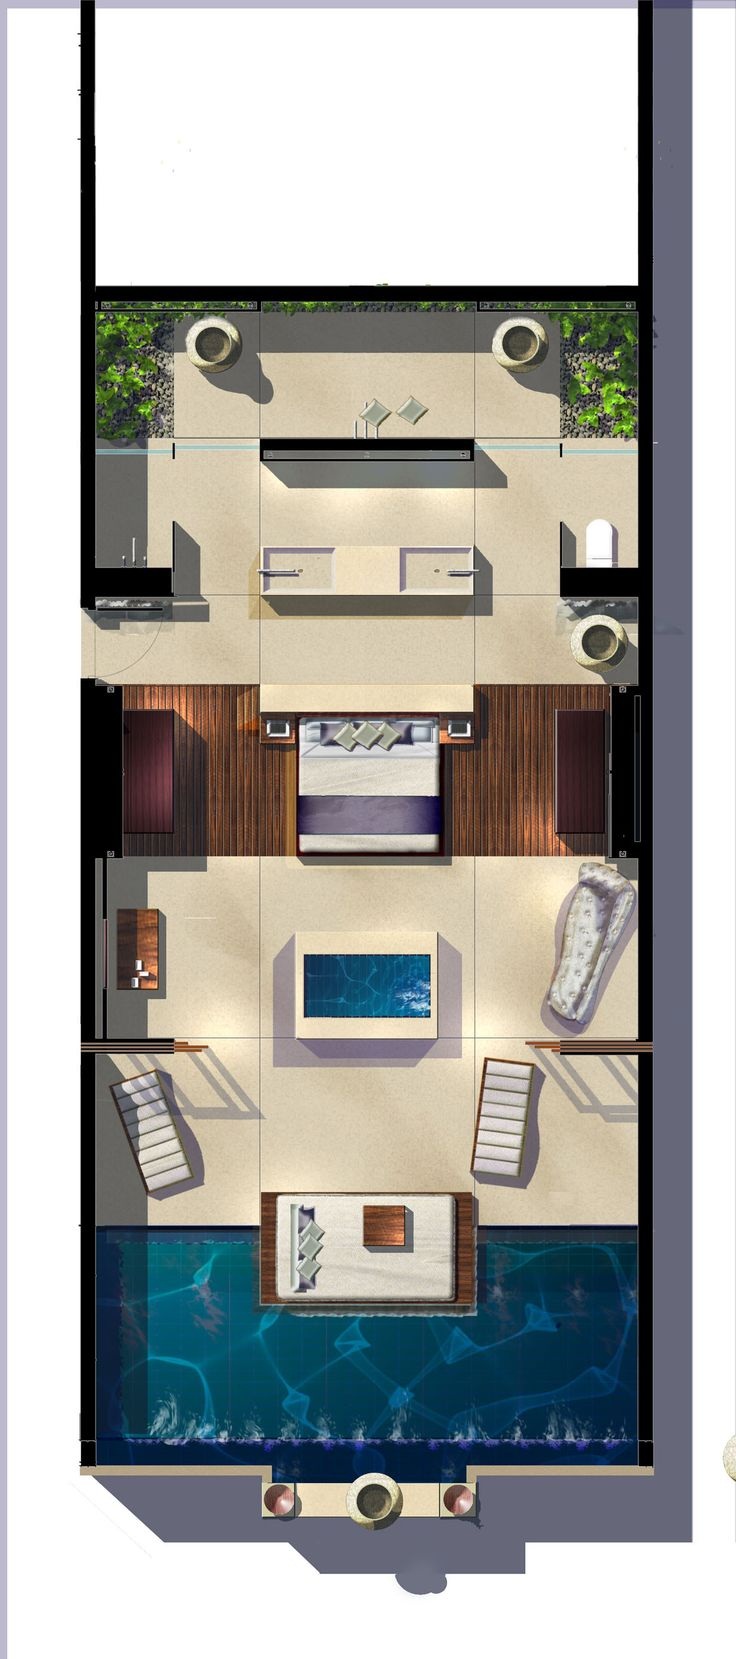 Hilton Hotel Fiji, Concept Plan | MORE on http://www.pinterest.com/shadow3000/%E5%BD%A9%E8%89%B2%E5%B9%B3%E9%9D%A2/